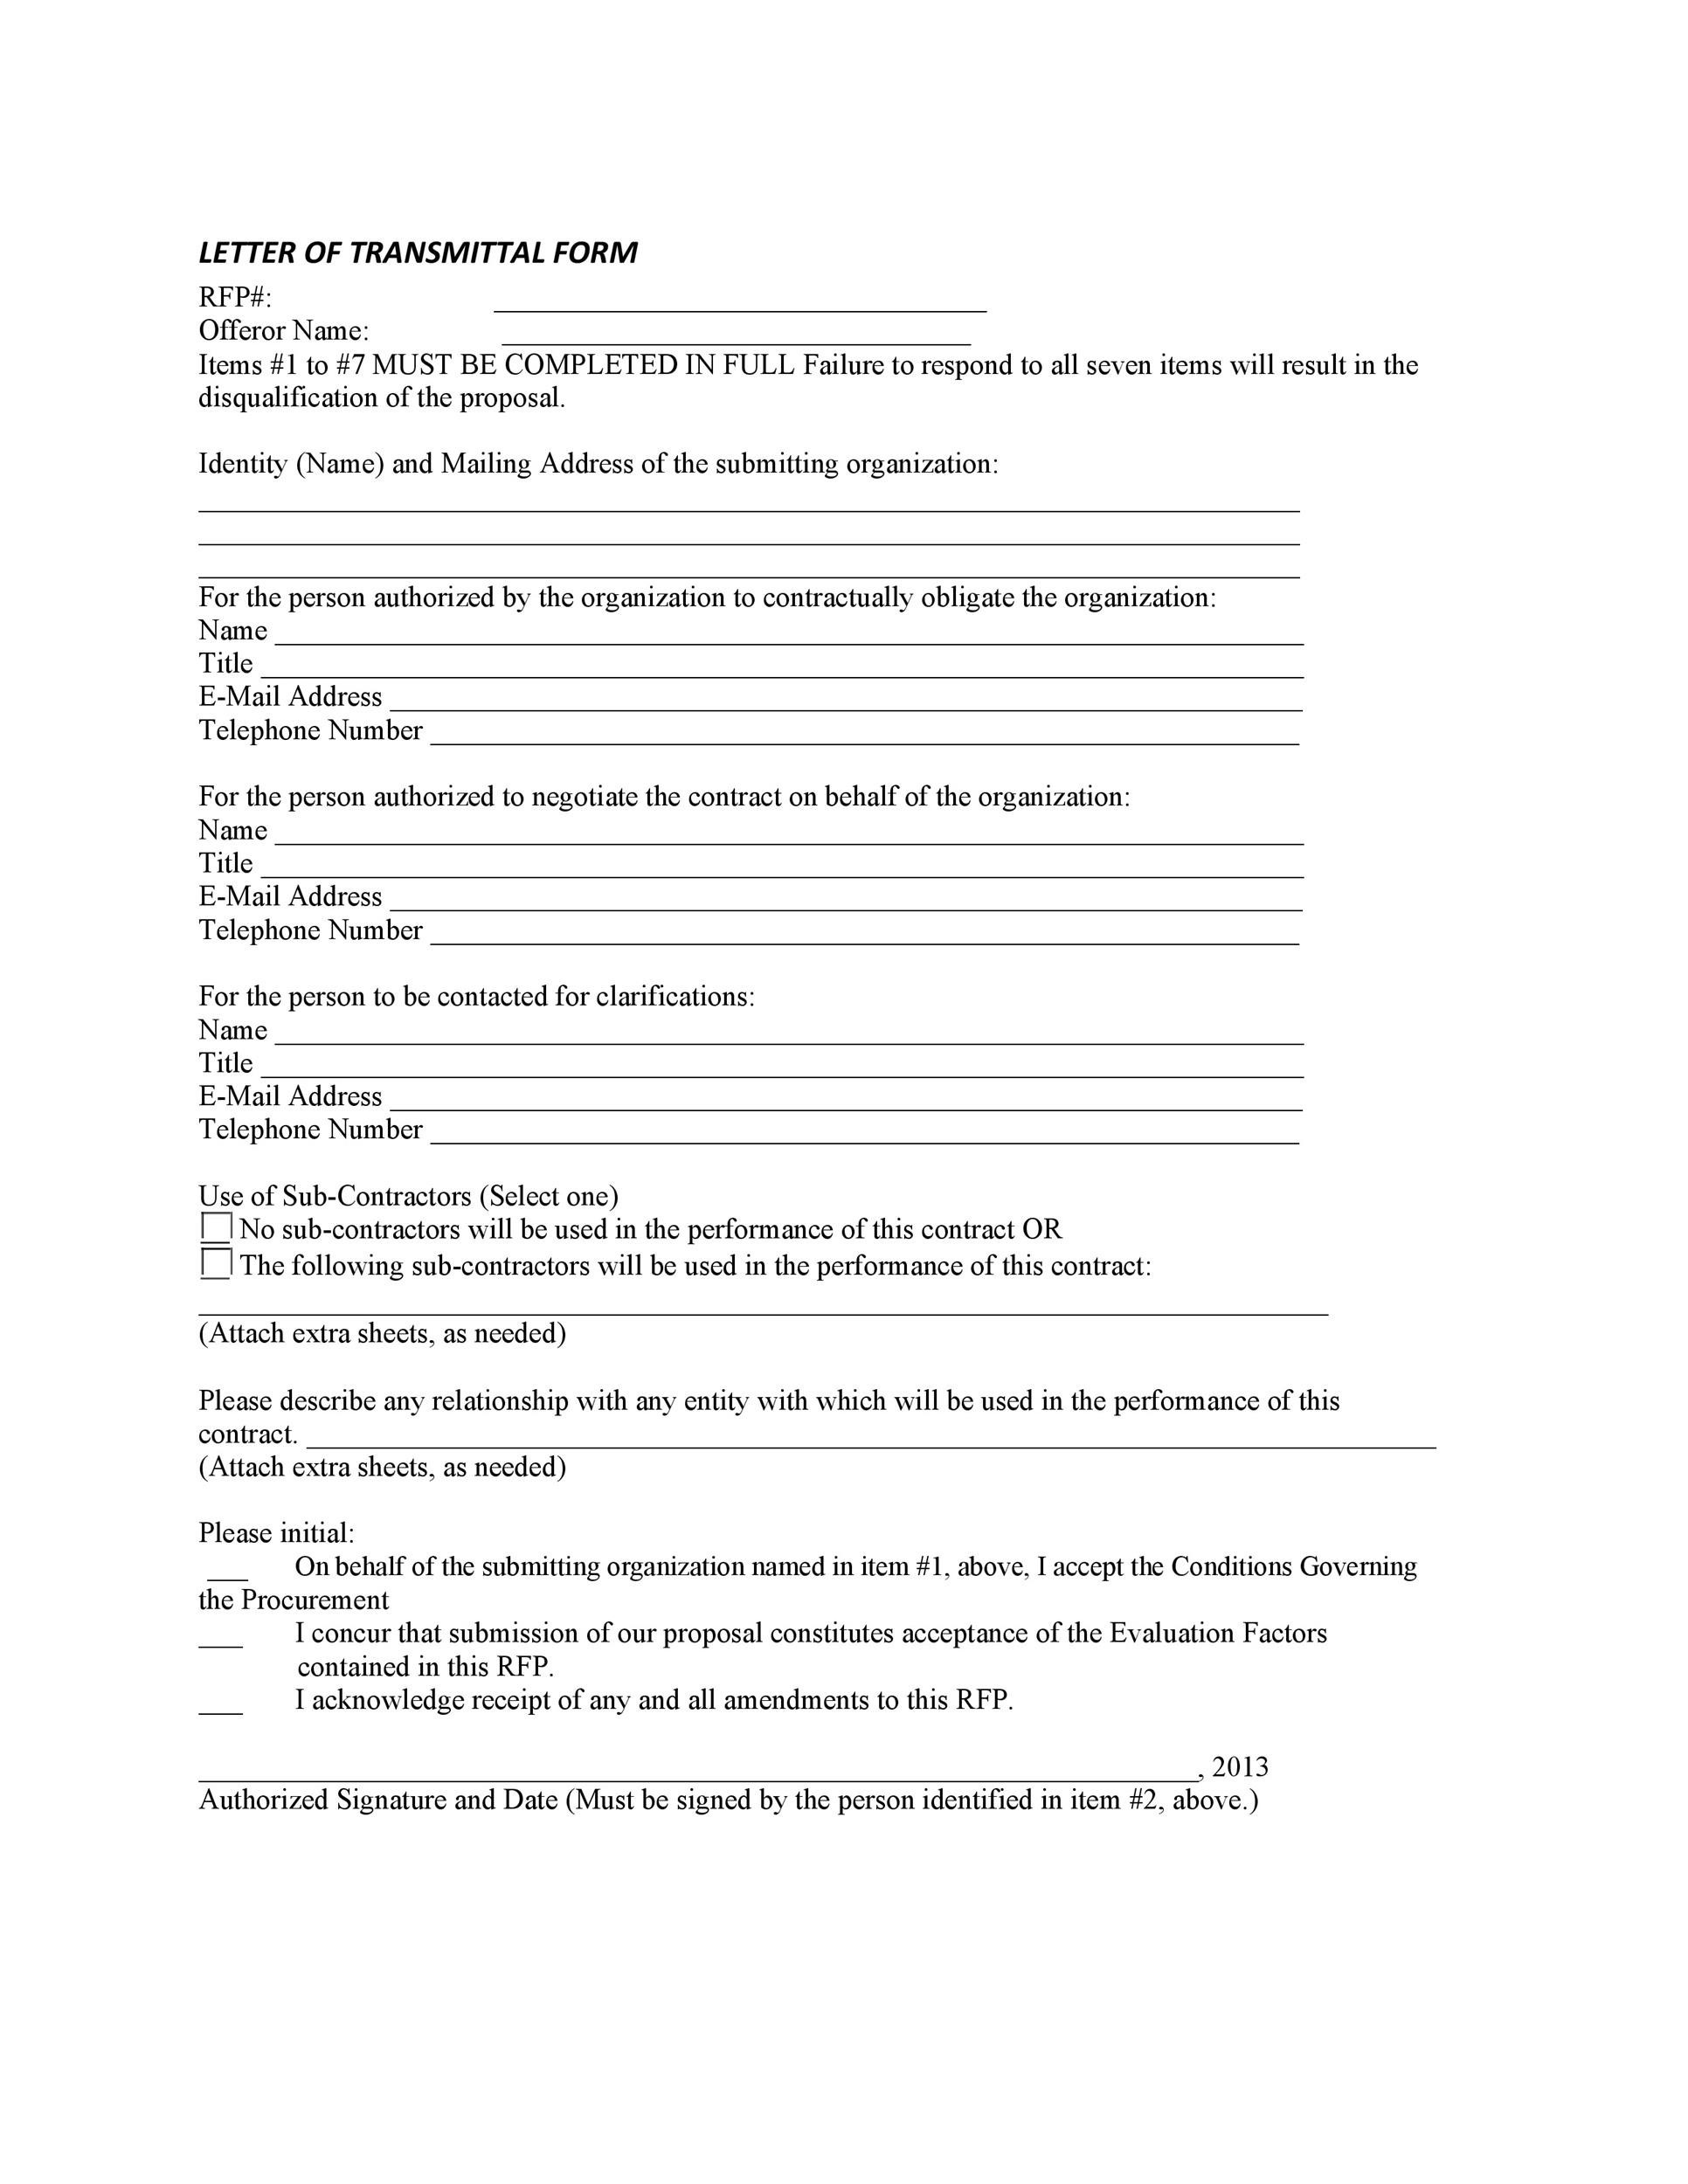 Letter of Transmittal - 40+ Great Examples  Templates - Template Lab - letter of transmittal for proposal